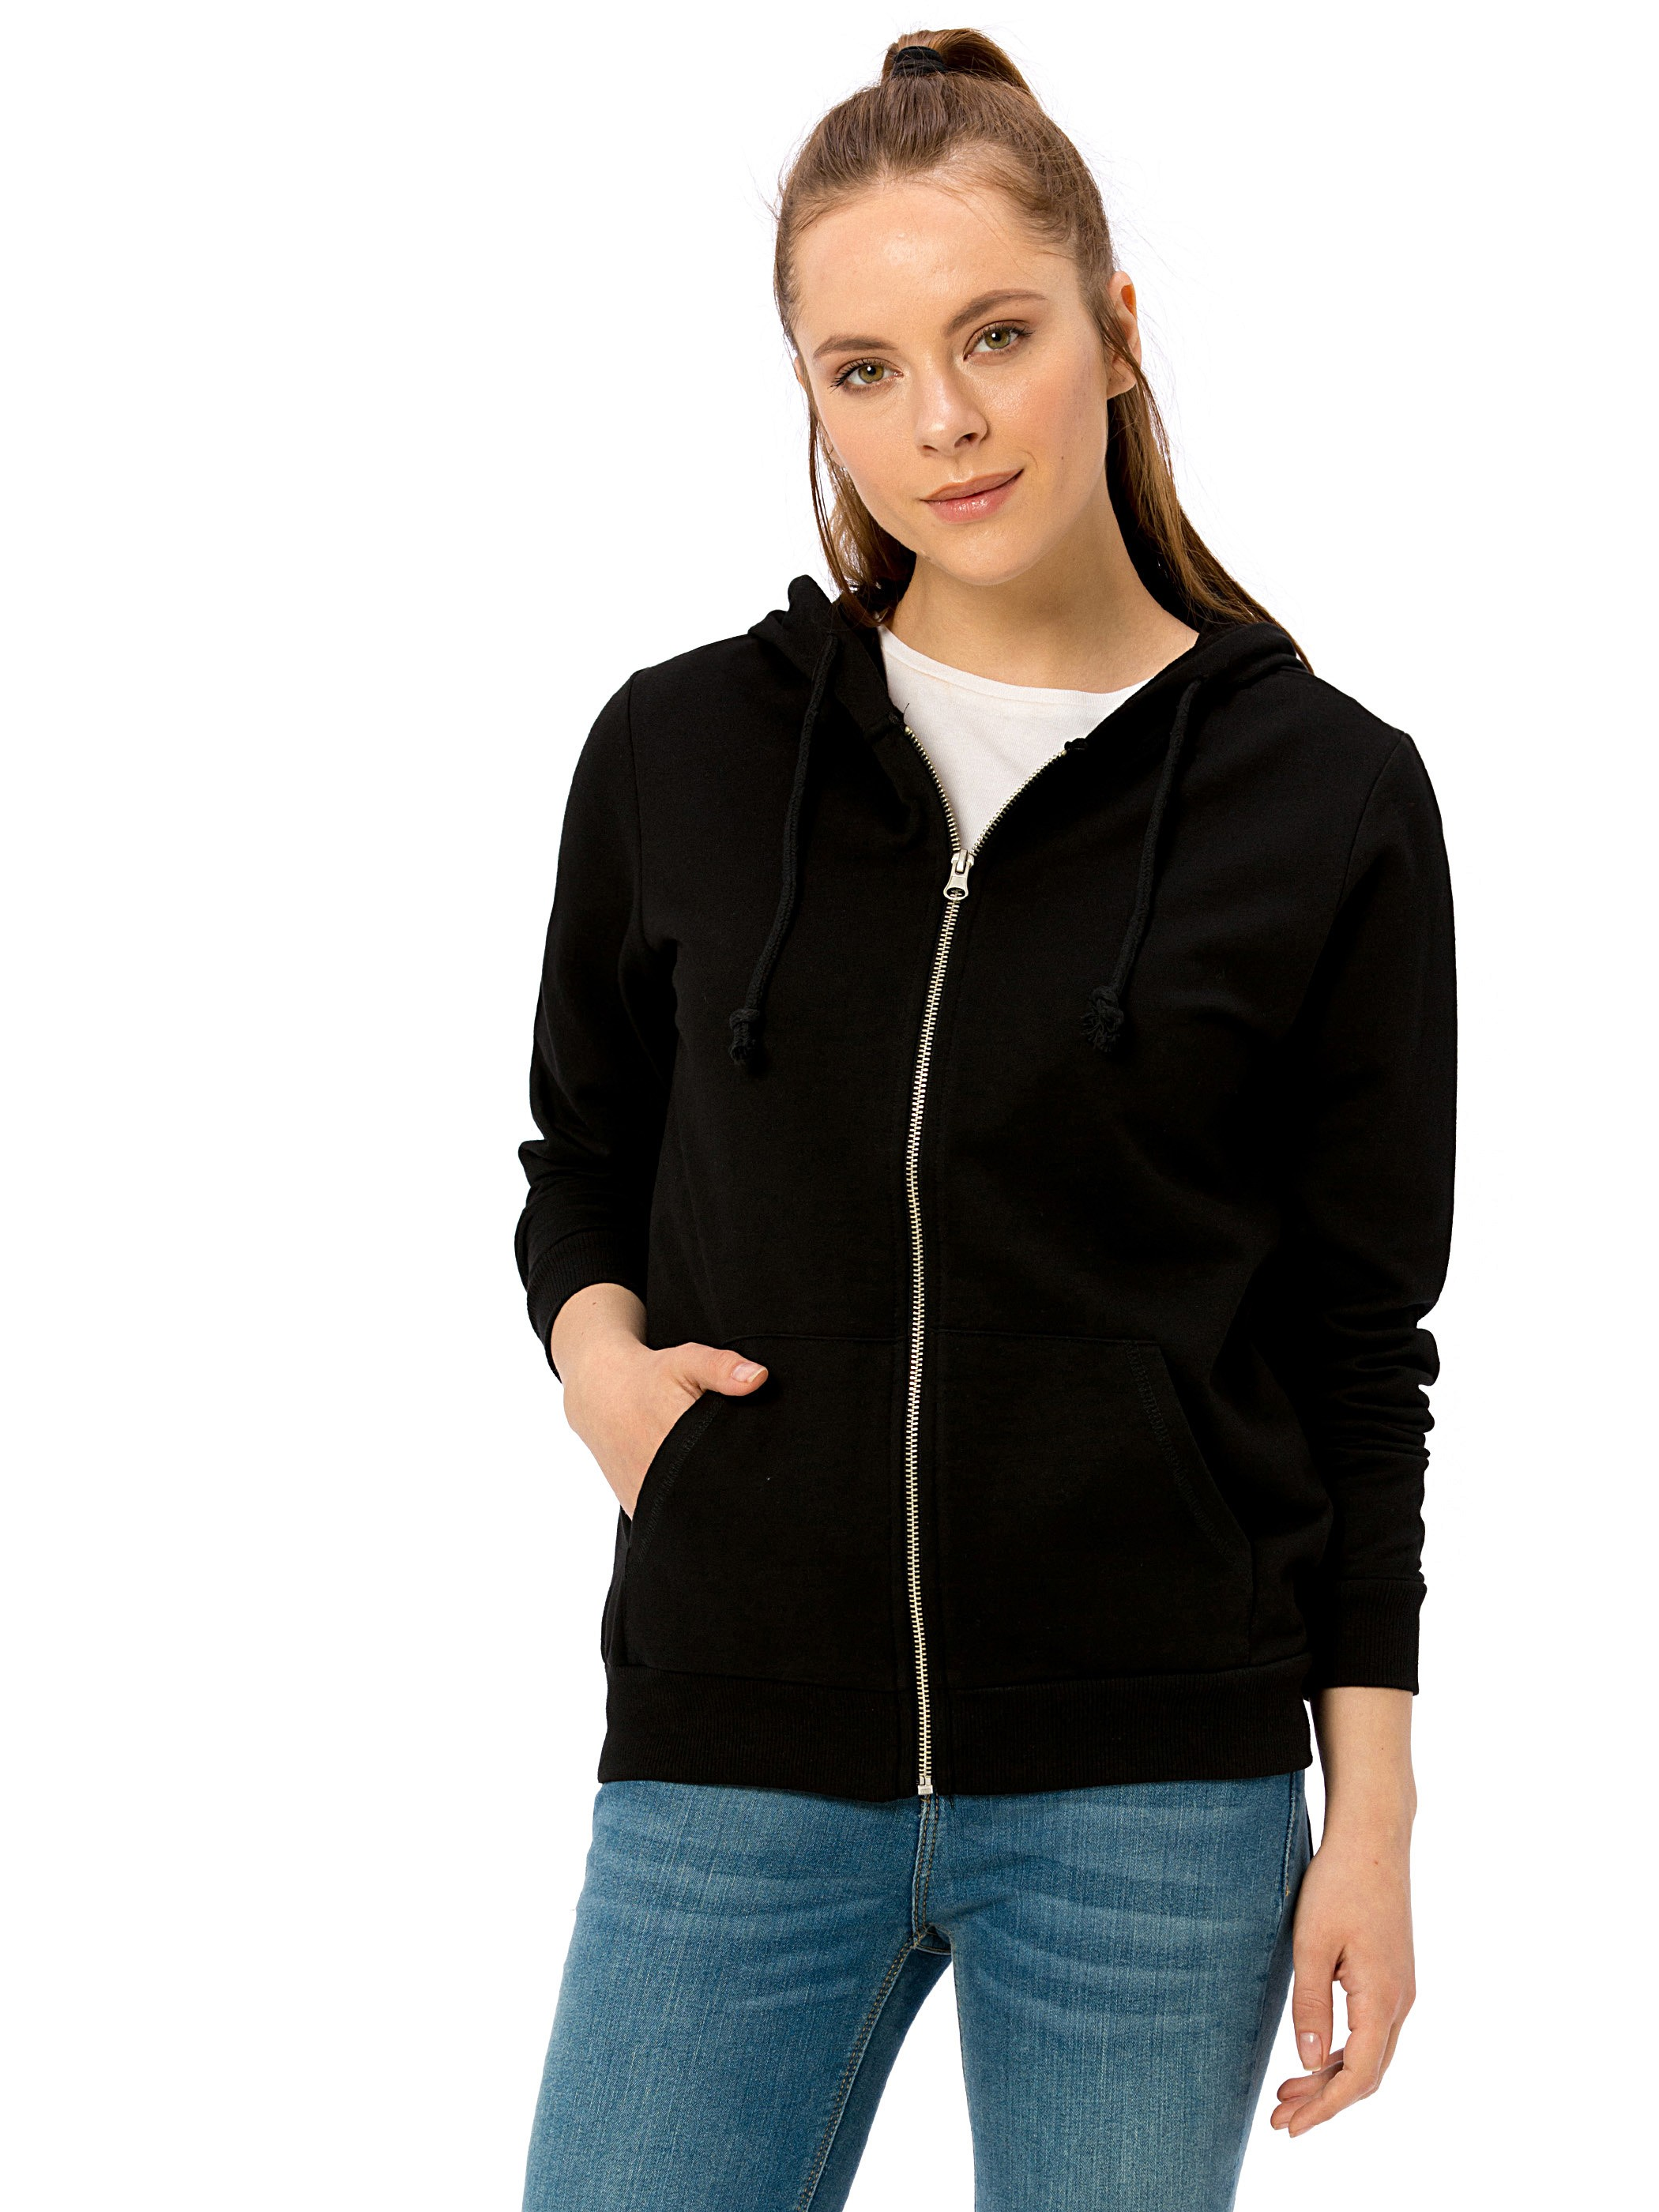 Black - Sweatshirt - 8S6183Z8